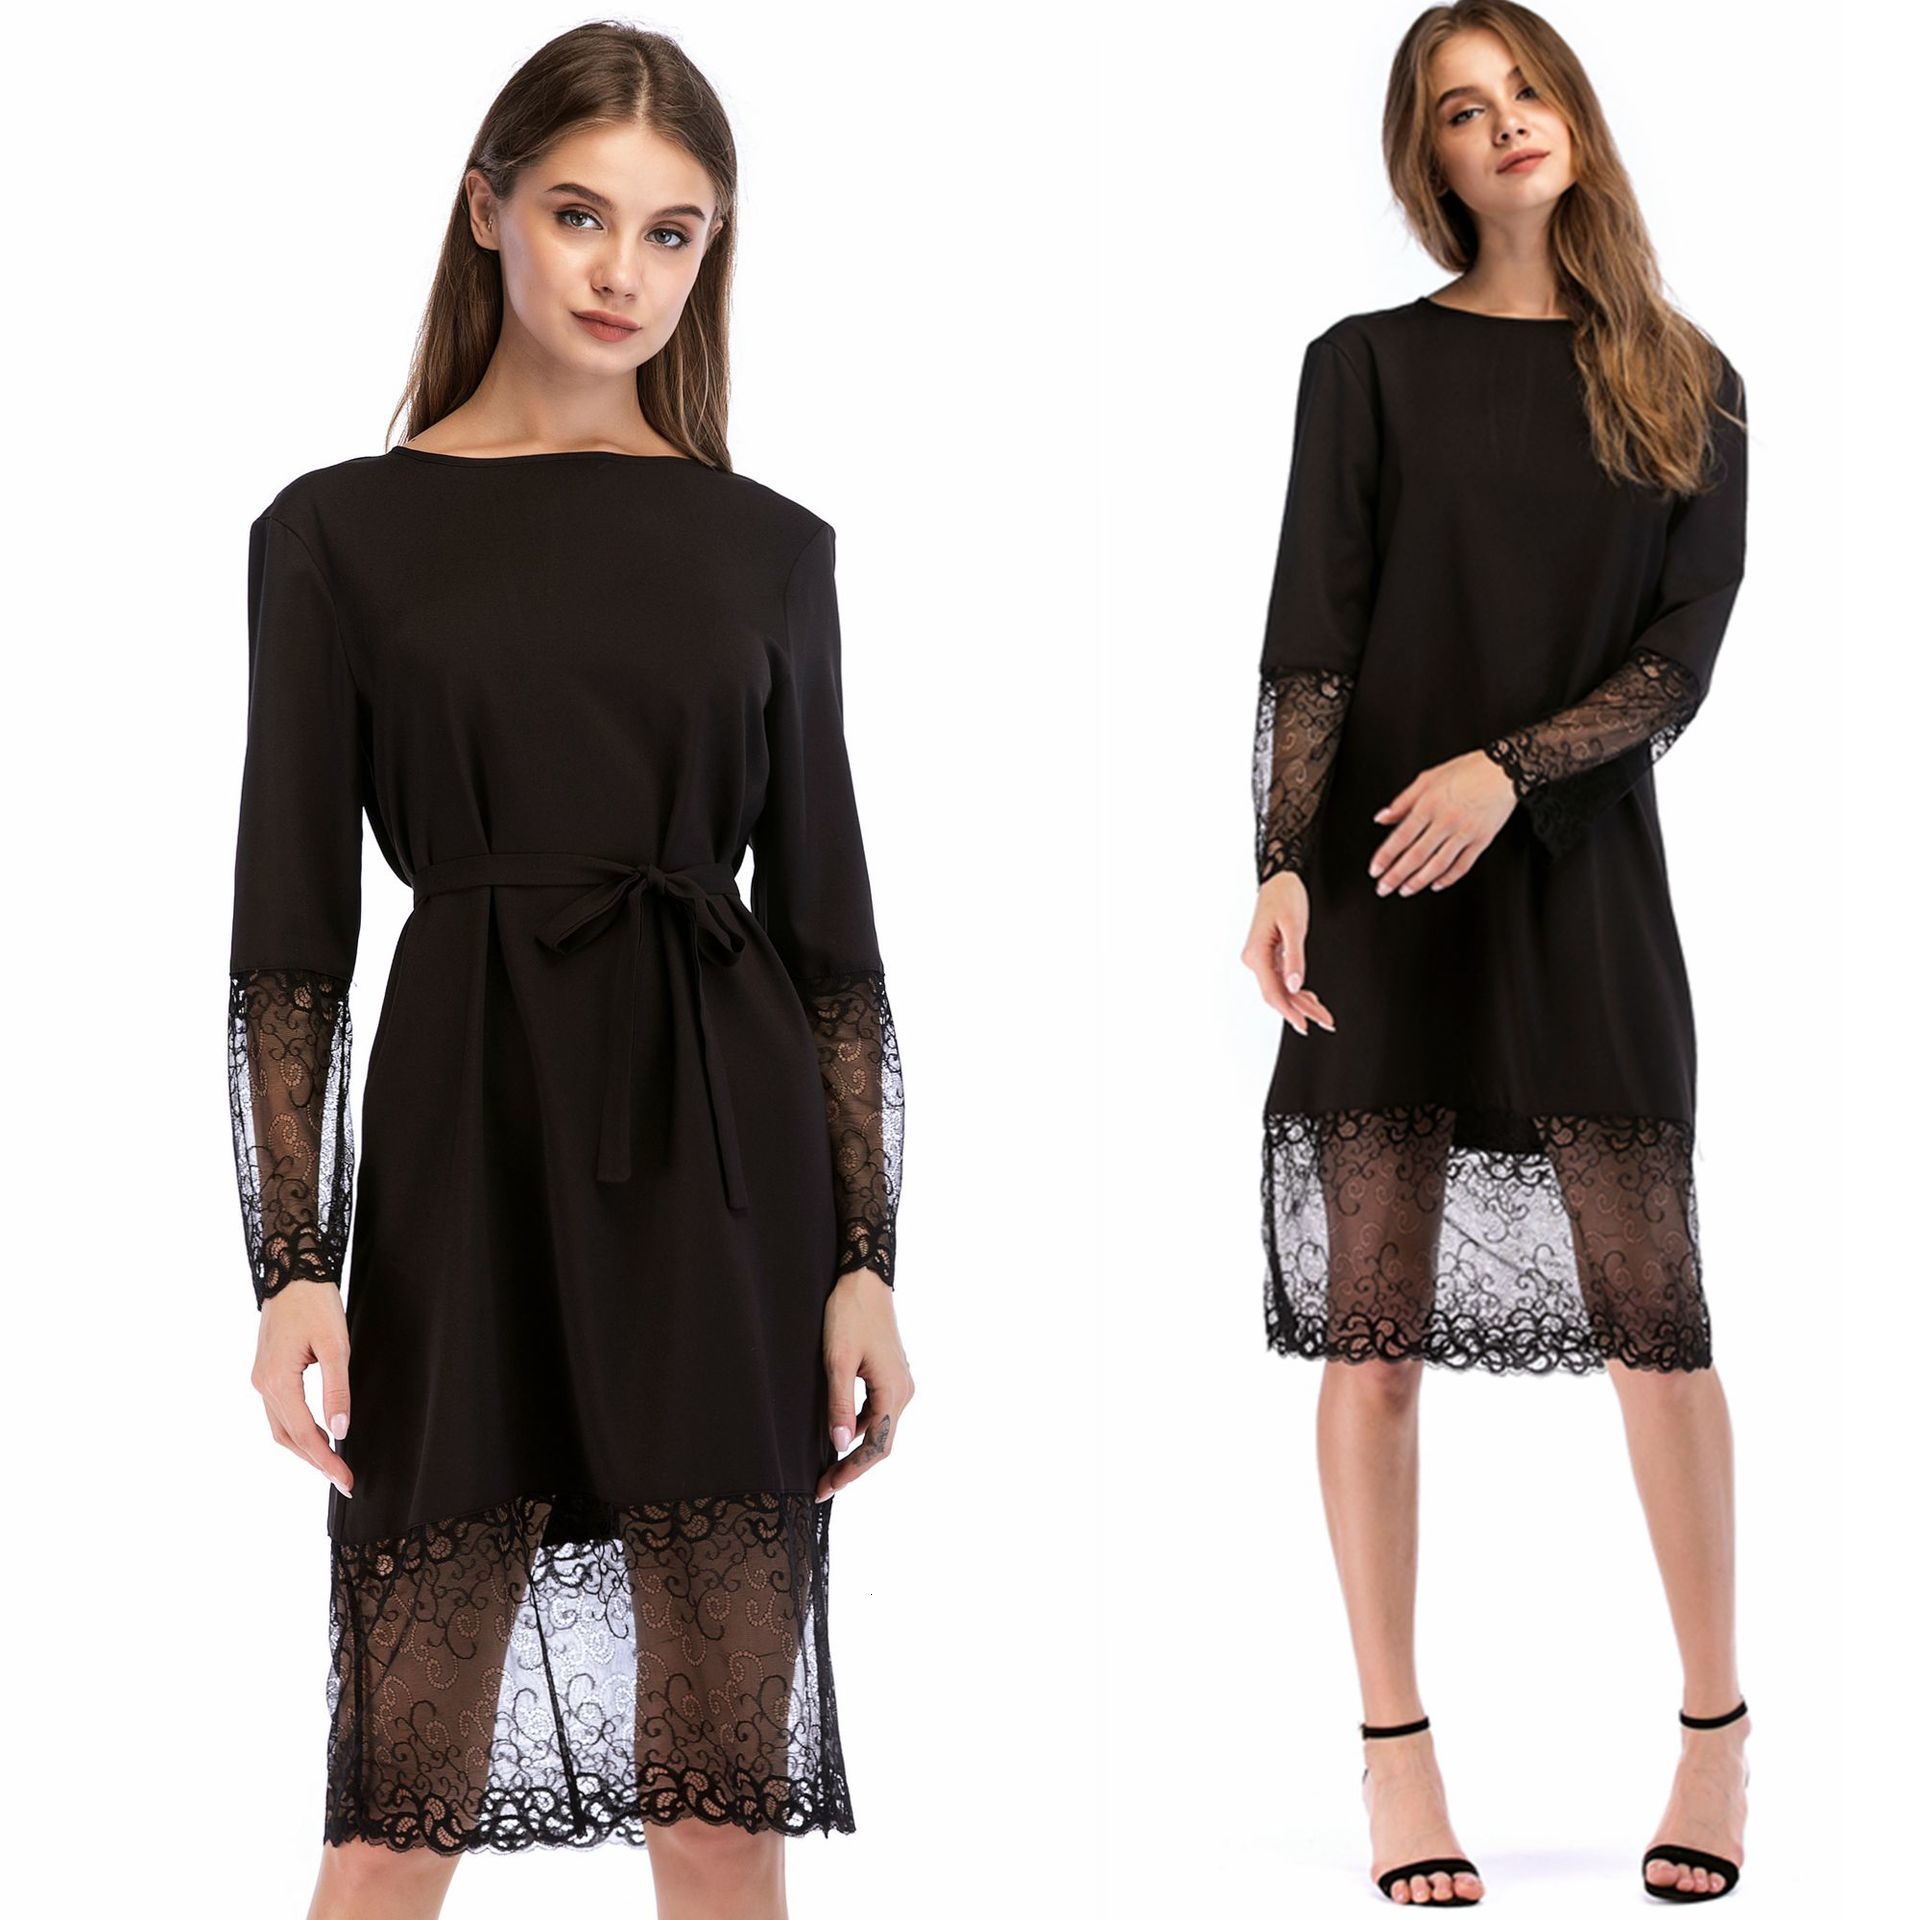 BacklakeGirls Plus Size Lace Tulle Edge Round Neck Long Sleeve Cocktail Dress With Sashes For Cocktail Party Robe De Cocktail